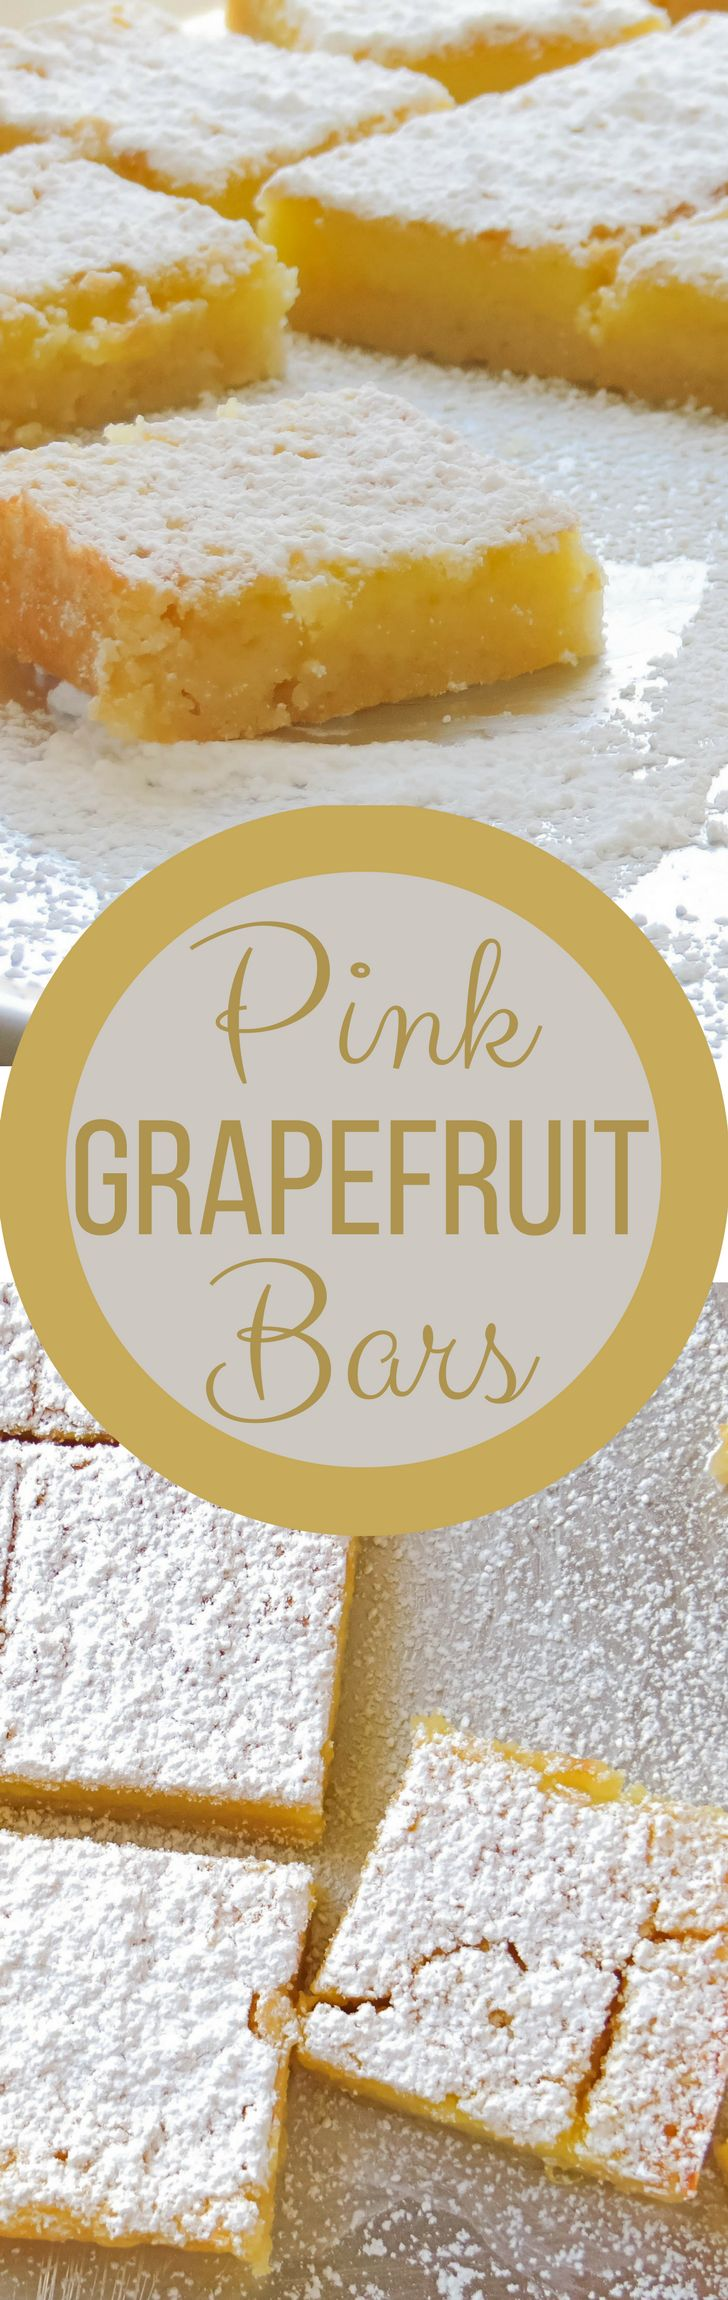 A twist on the classic lemon bar recipe, these are made with grapefruit! Pink Grapefruit Bars are easy to make and such a treat!